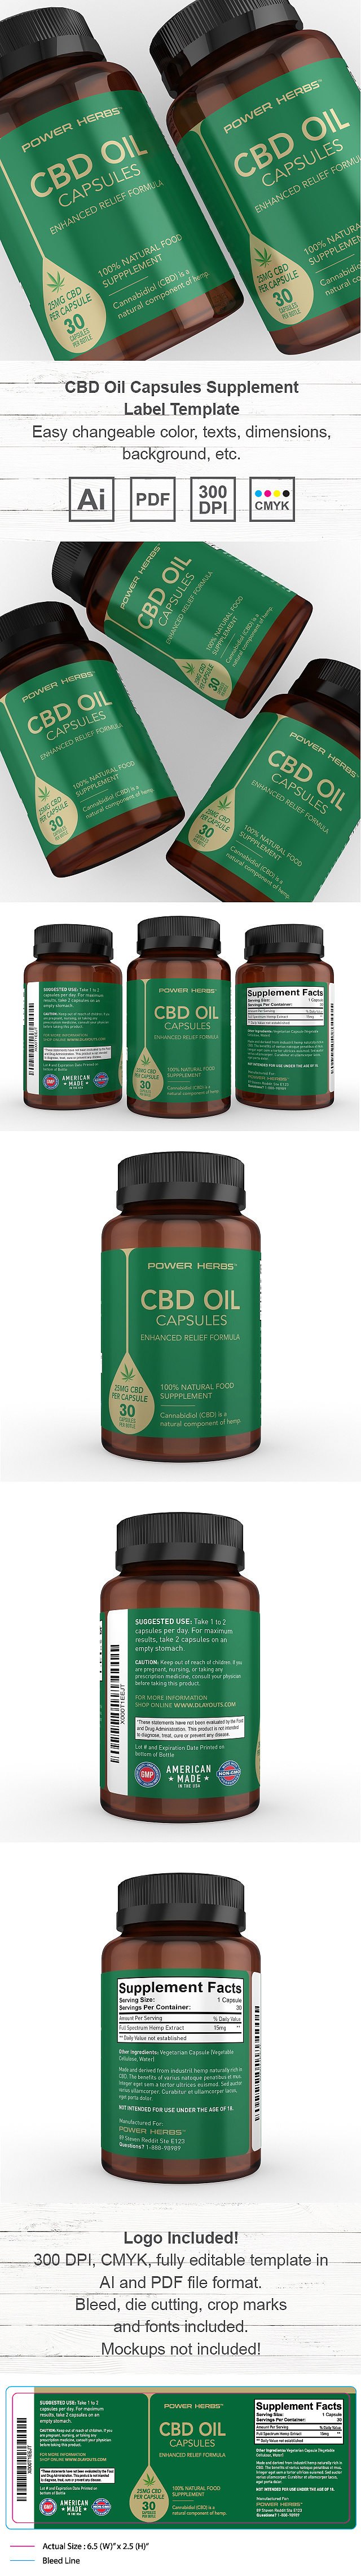 CBD Oil Capsules Supplement Label Template